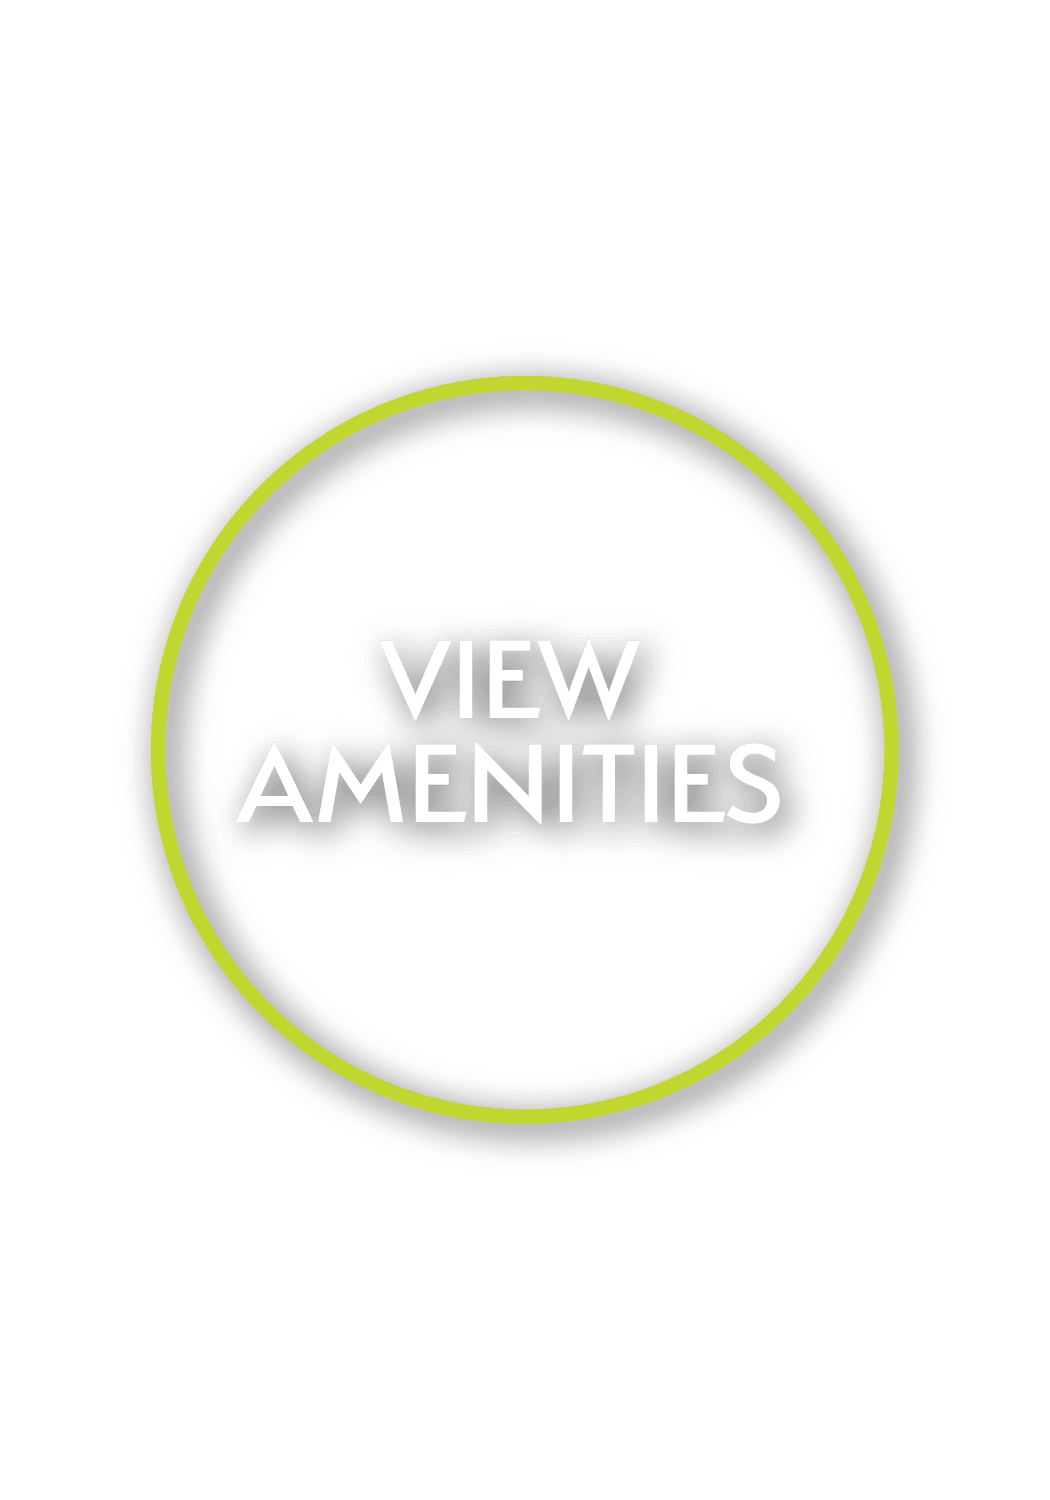 View amenities at The View at Lakeside in Lewisville, Texas